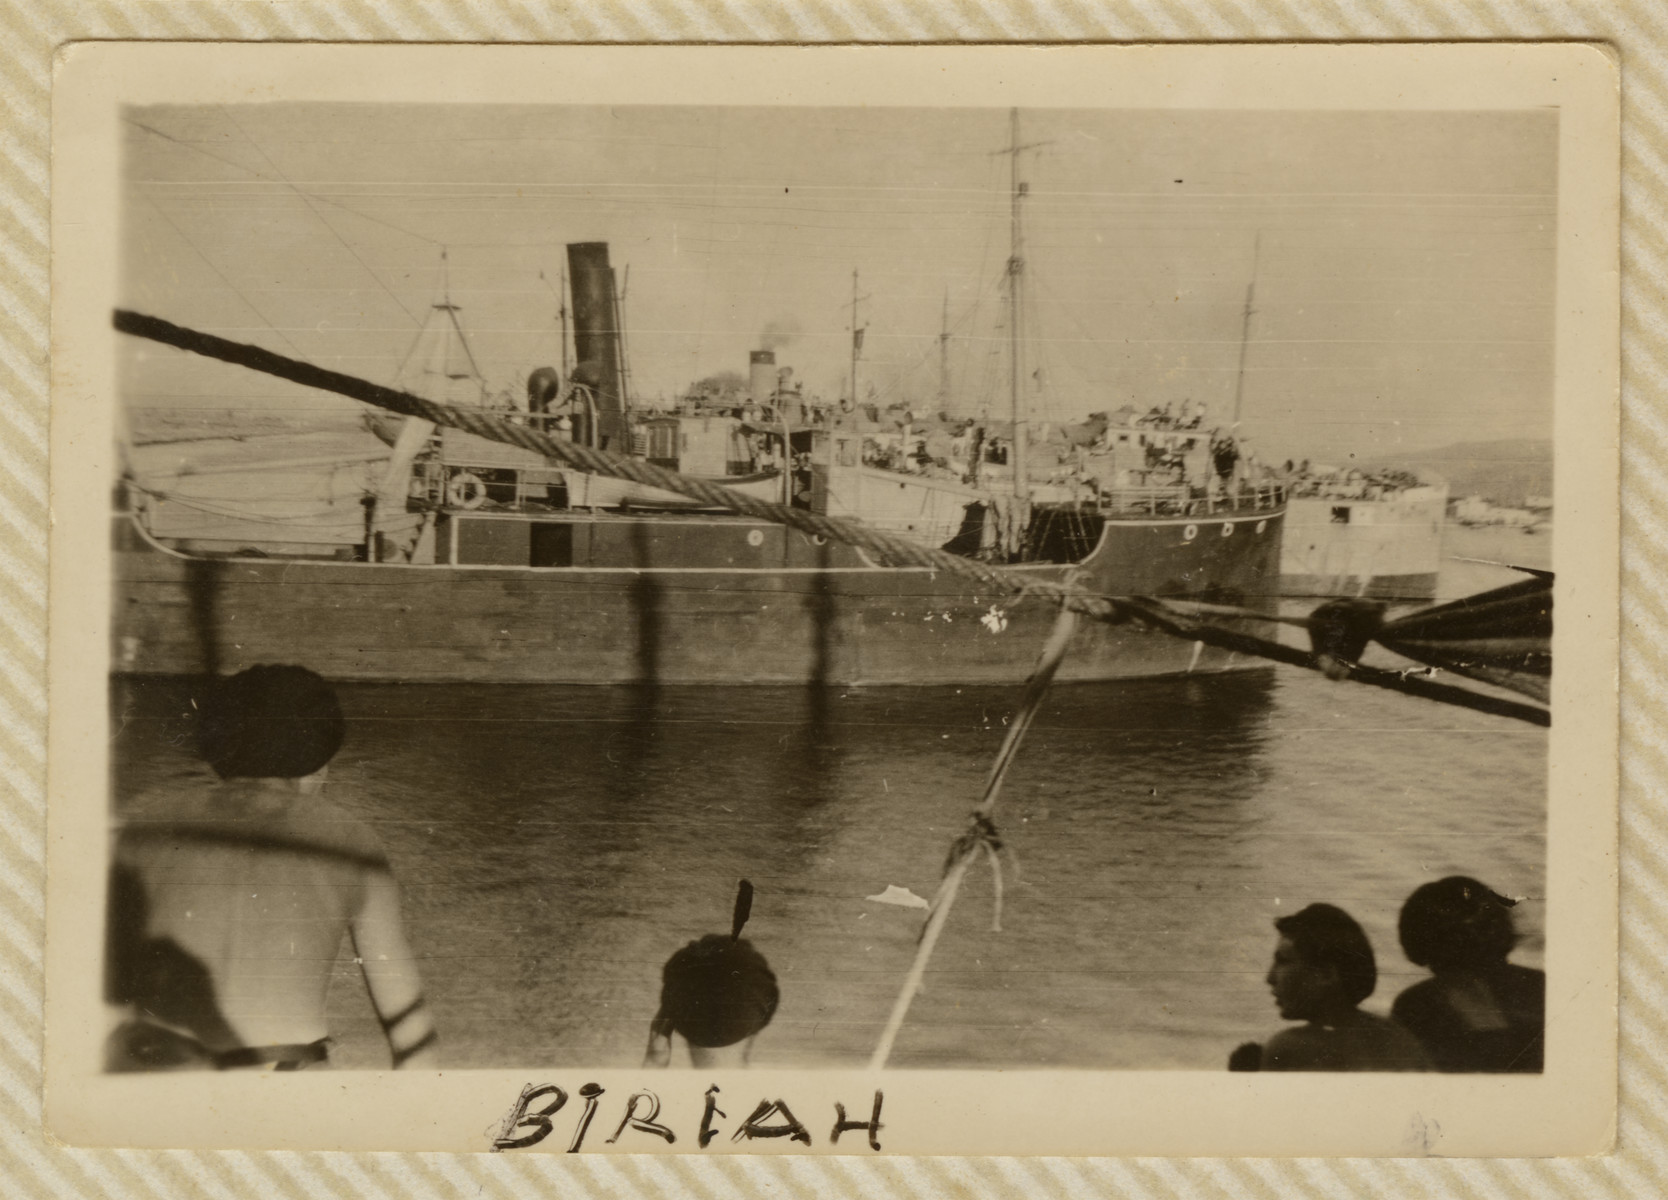 View of the Biriah, a ship carrying Jewish refugees en route to Palestine.